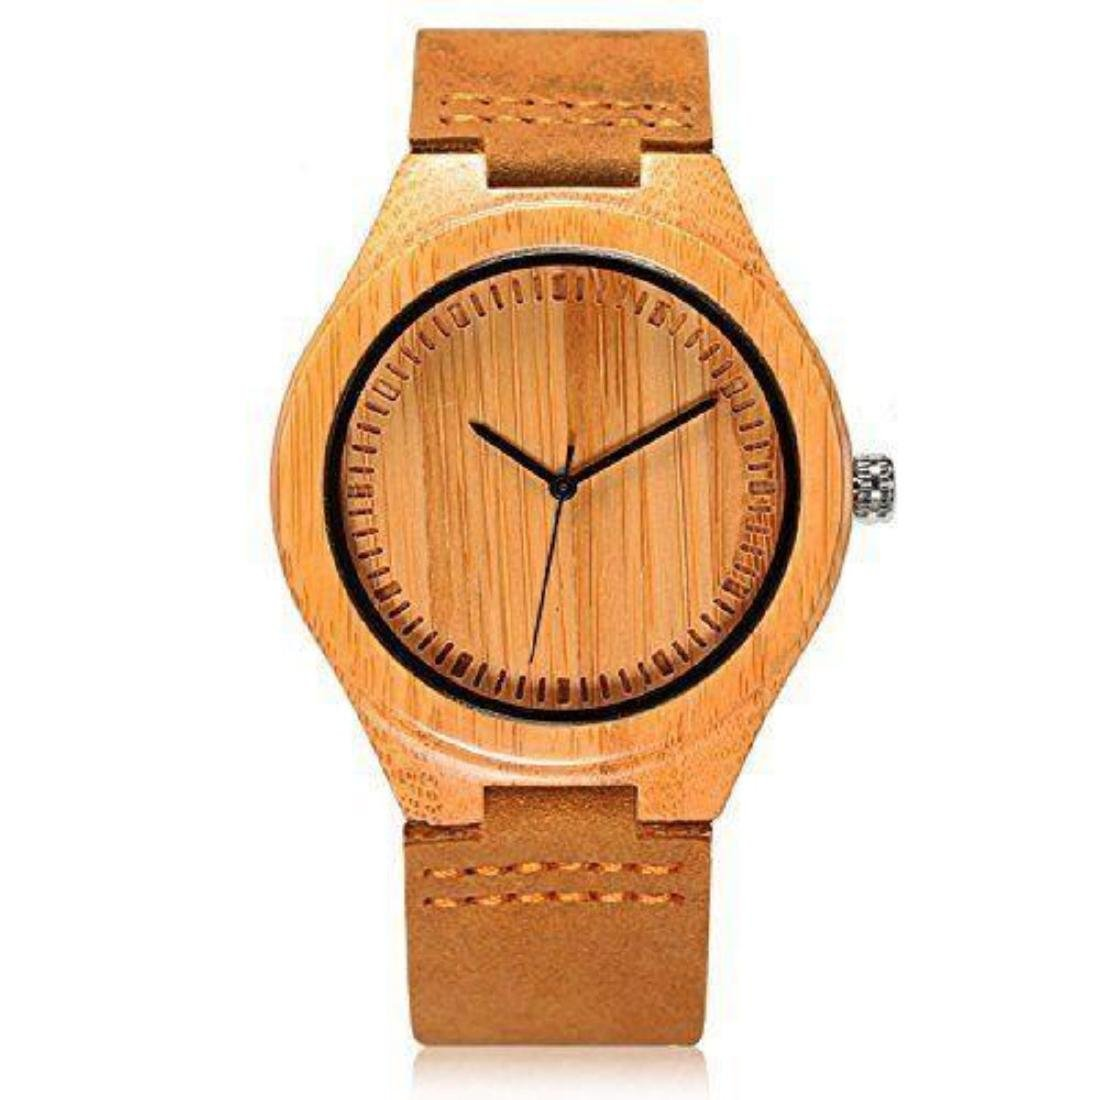 Cucol Wrist Watches Men's Bamboo Wooden With Brown - 4